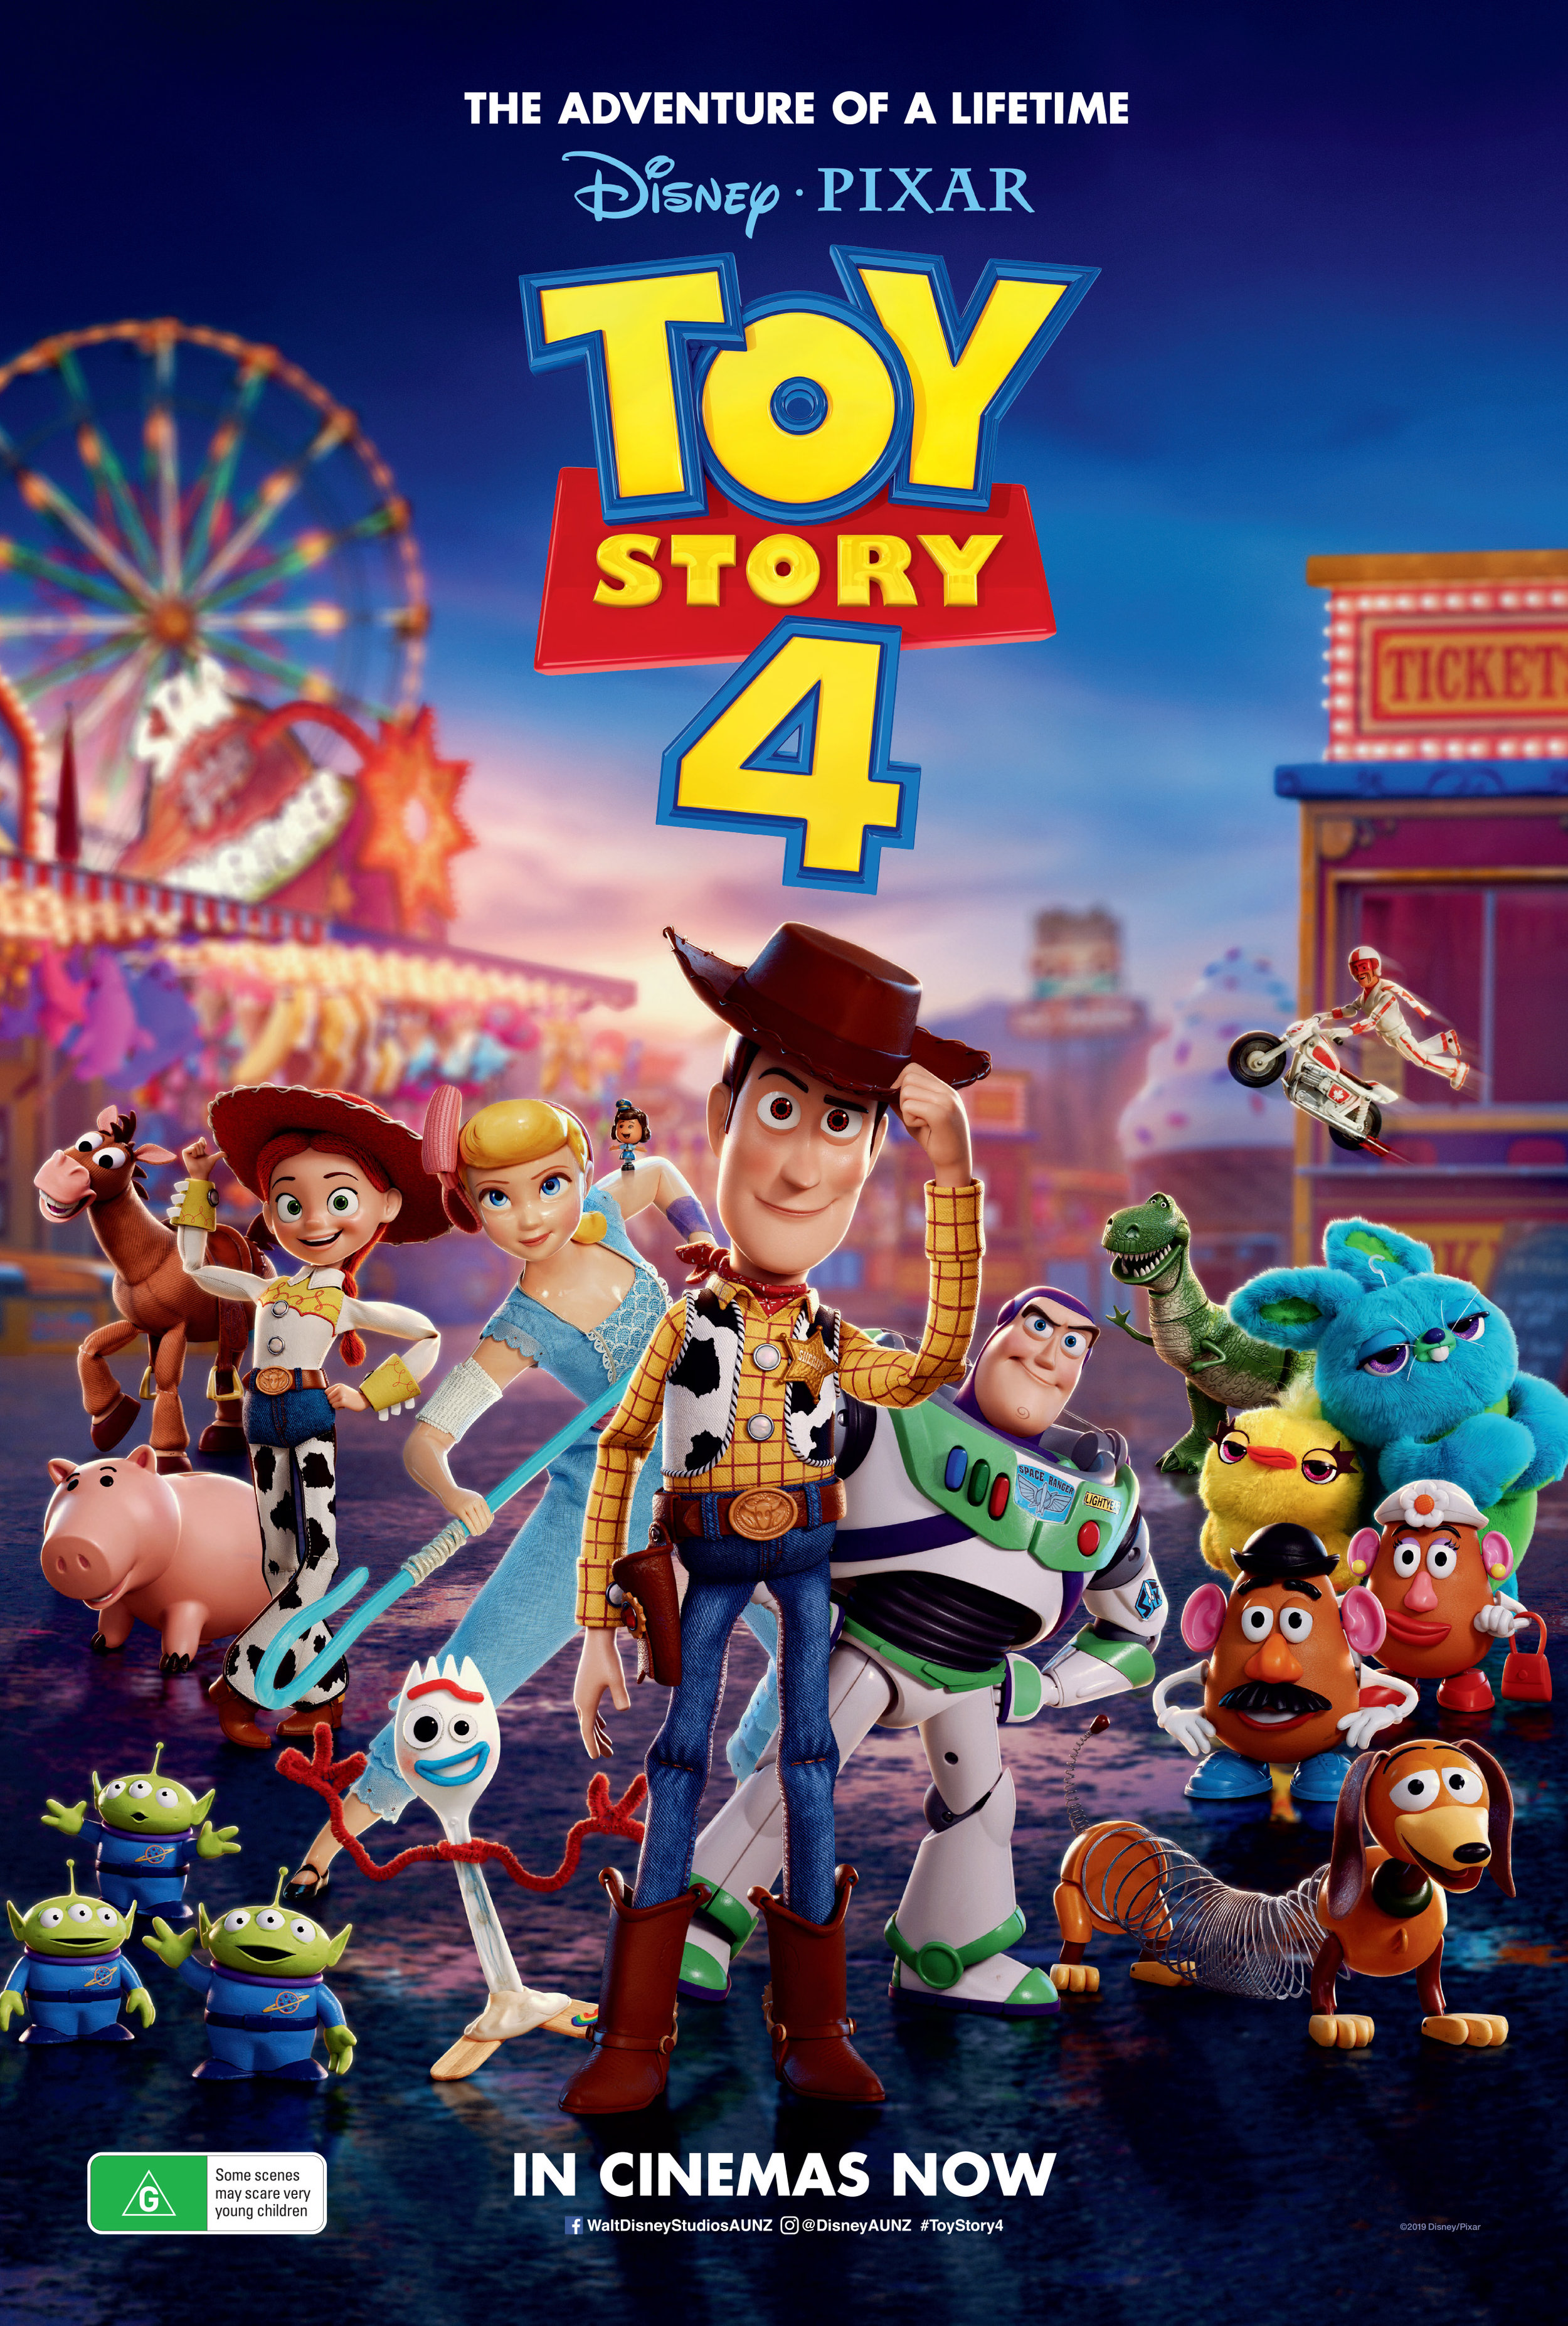 Toy Story 4 Movie Poster.jpg